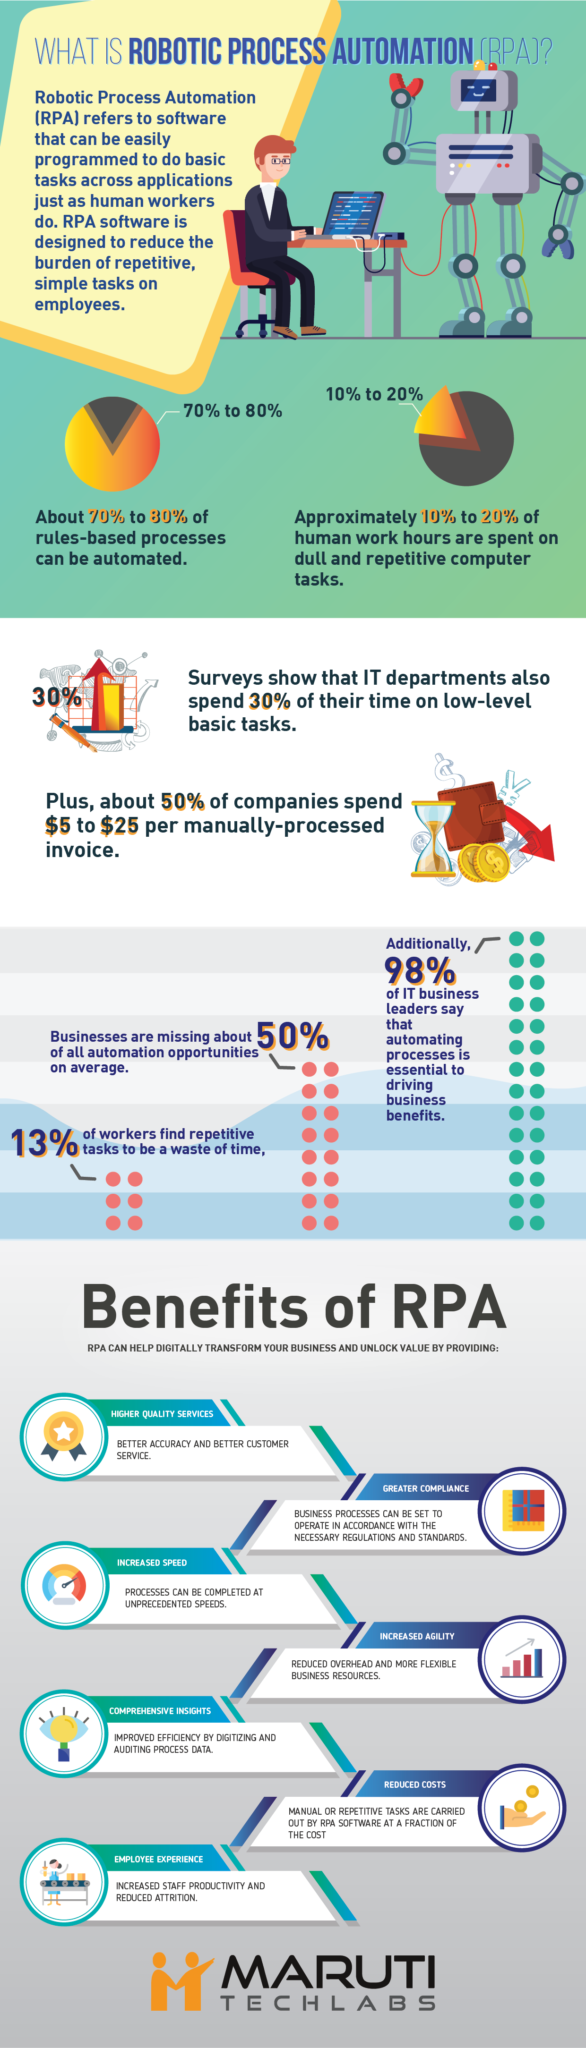 What Is Robotic Process Automation How Rpa Different From Ebook Implementation Products Robotics And Other Useful Things Vs Traditional